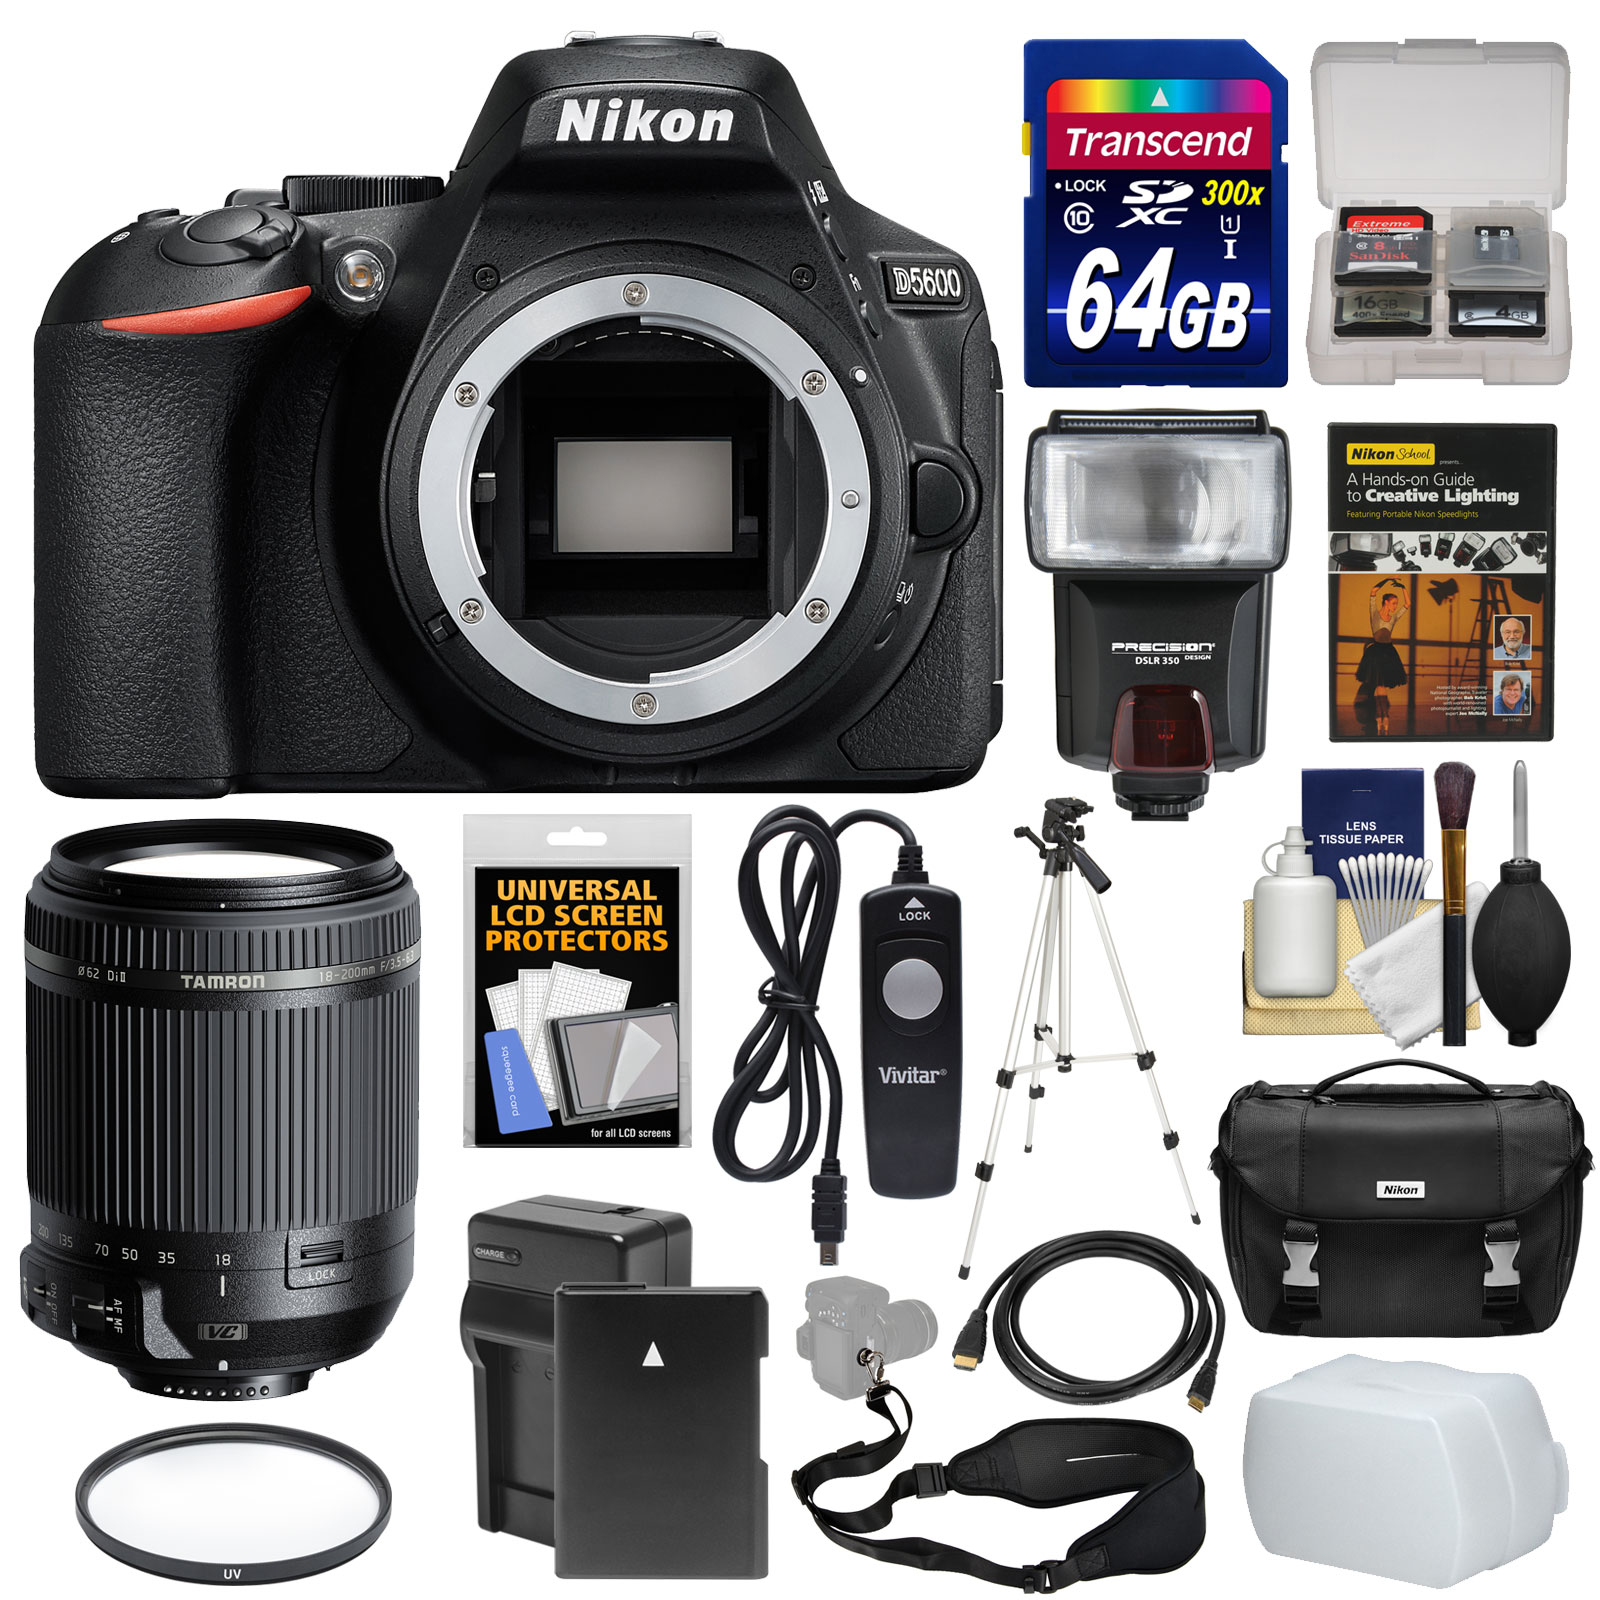 Nikon D5600 Wi-Fi Digital SLR Camera Body with 18-200mm VC Lens + 64GB Card + Case + Flash + Battery & Charger... by Nikon